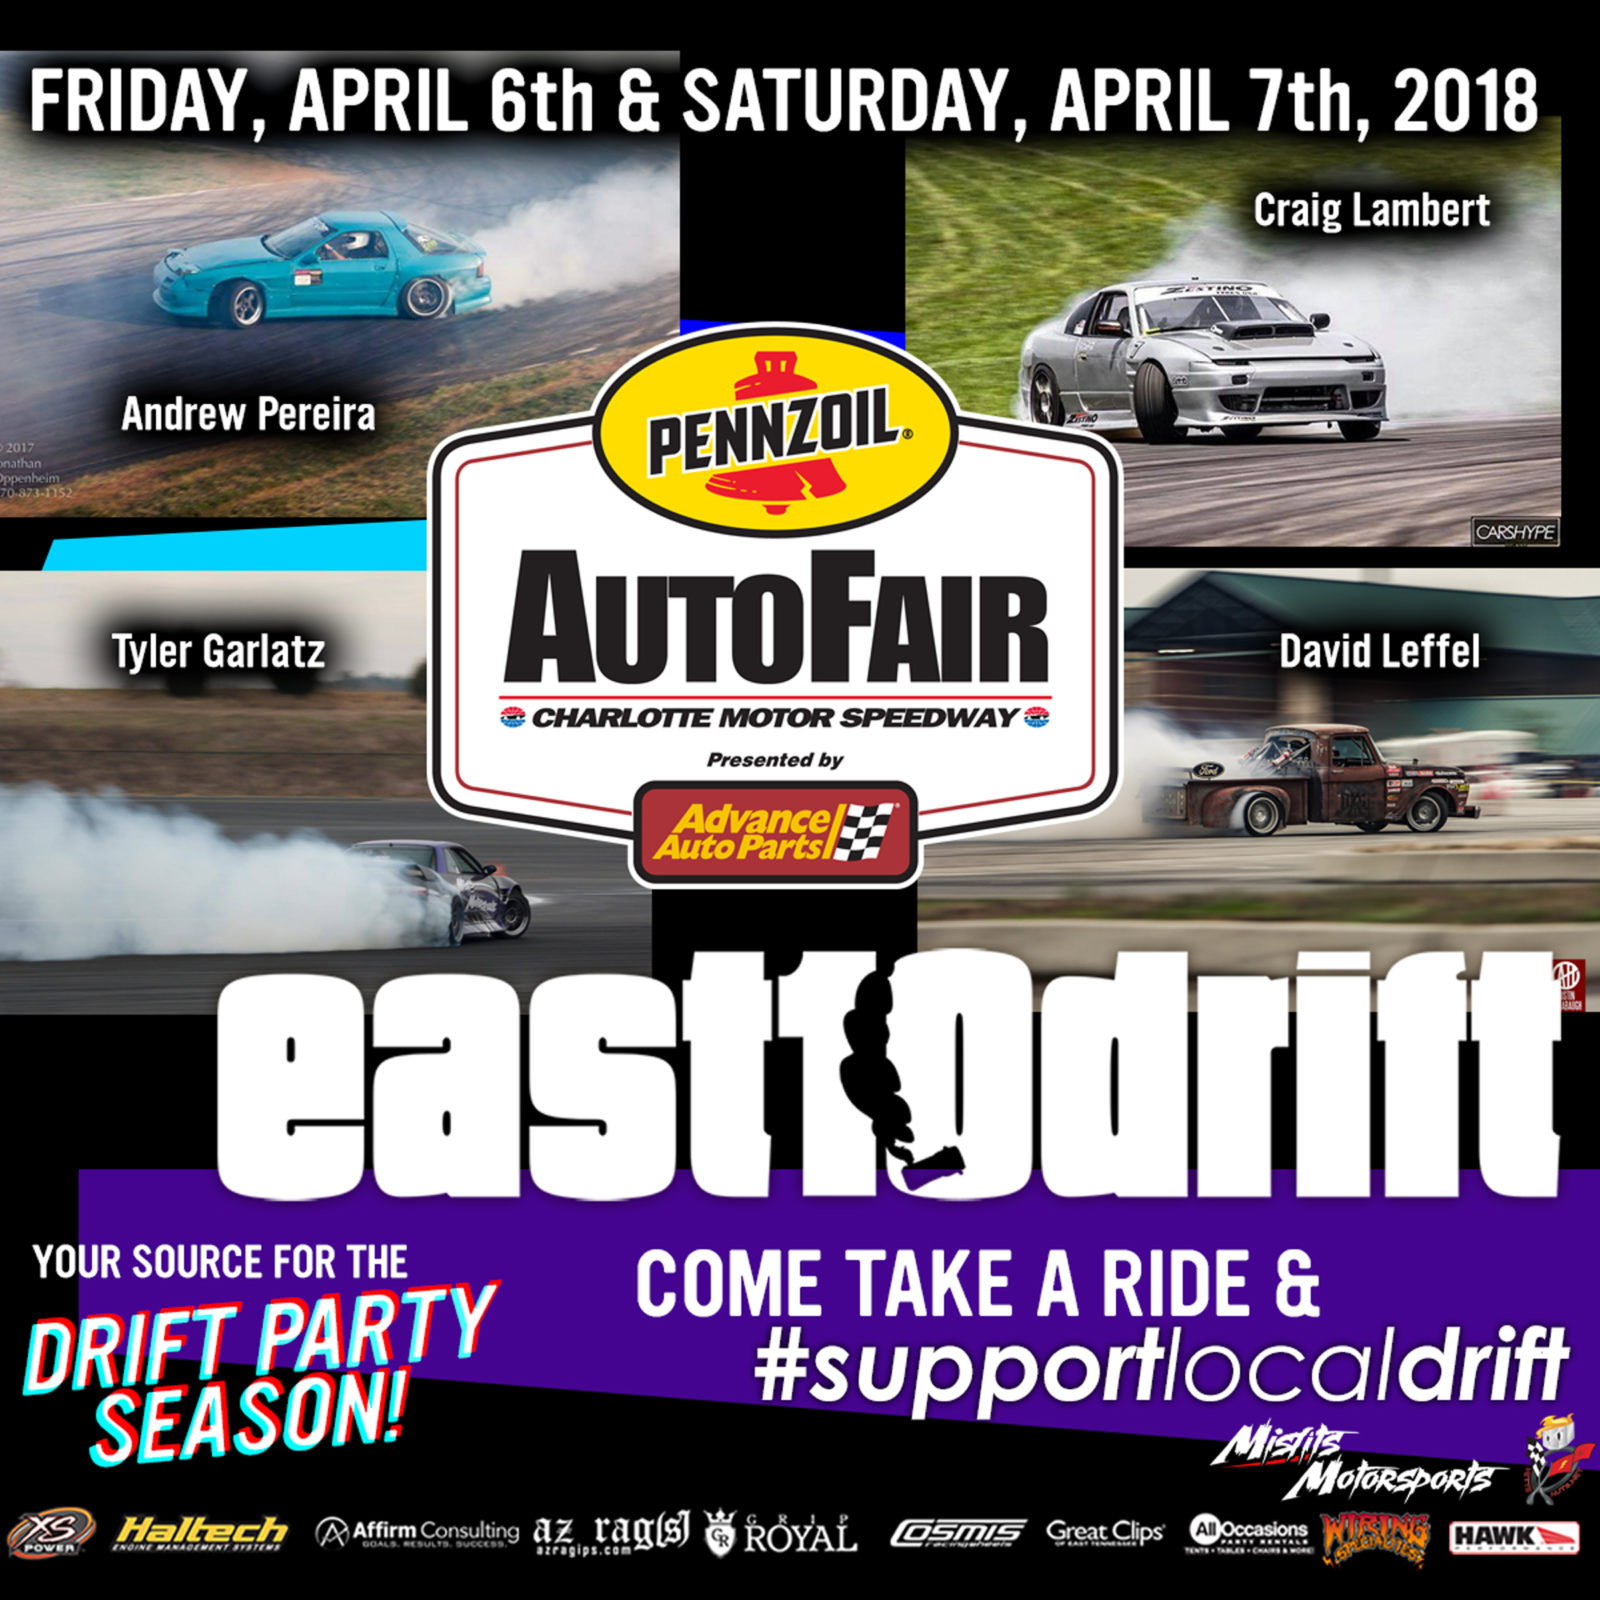 Auto Fair Drift Demo EastDrift - Charlotte motor speedway events car show